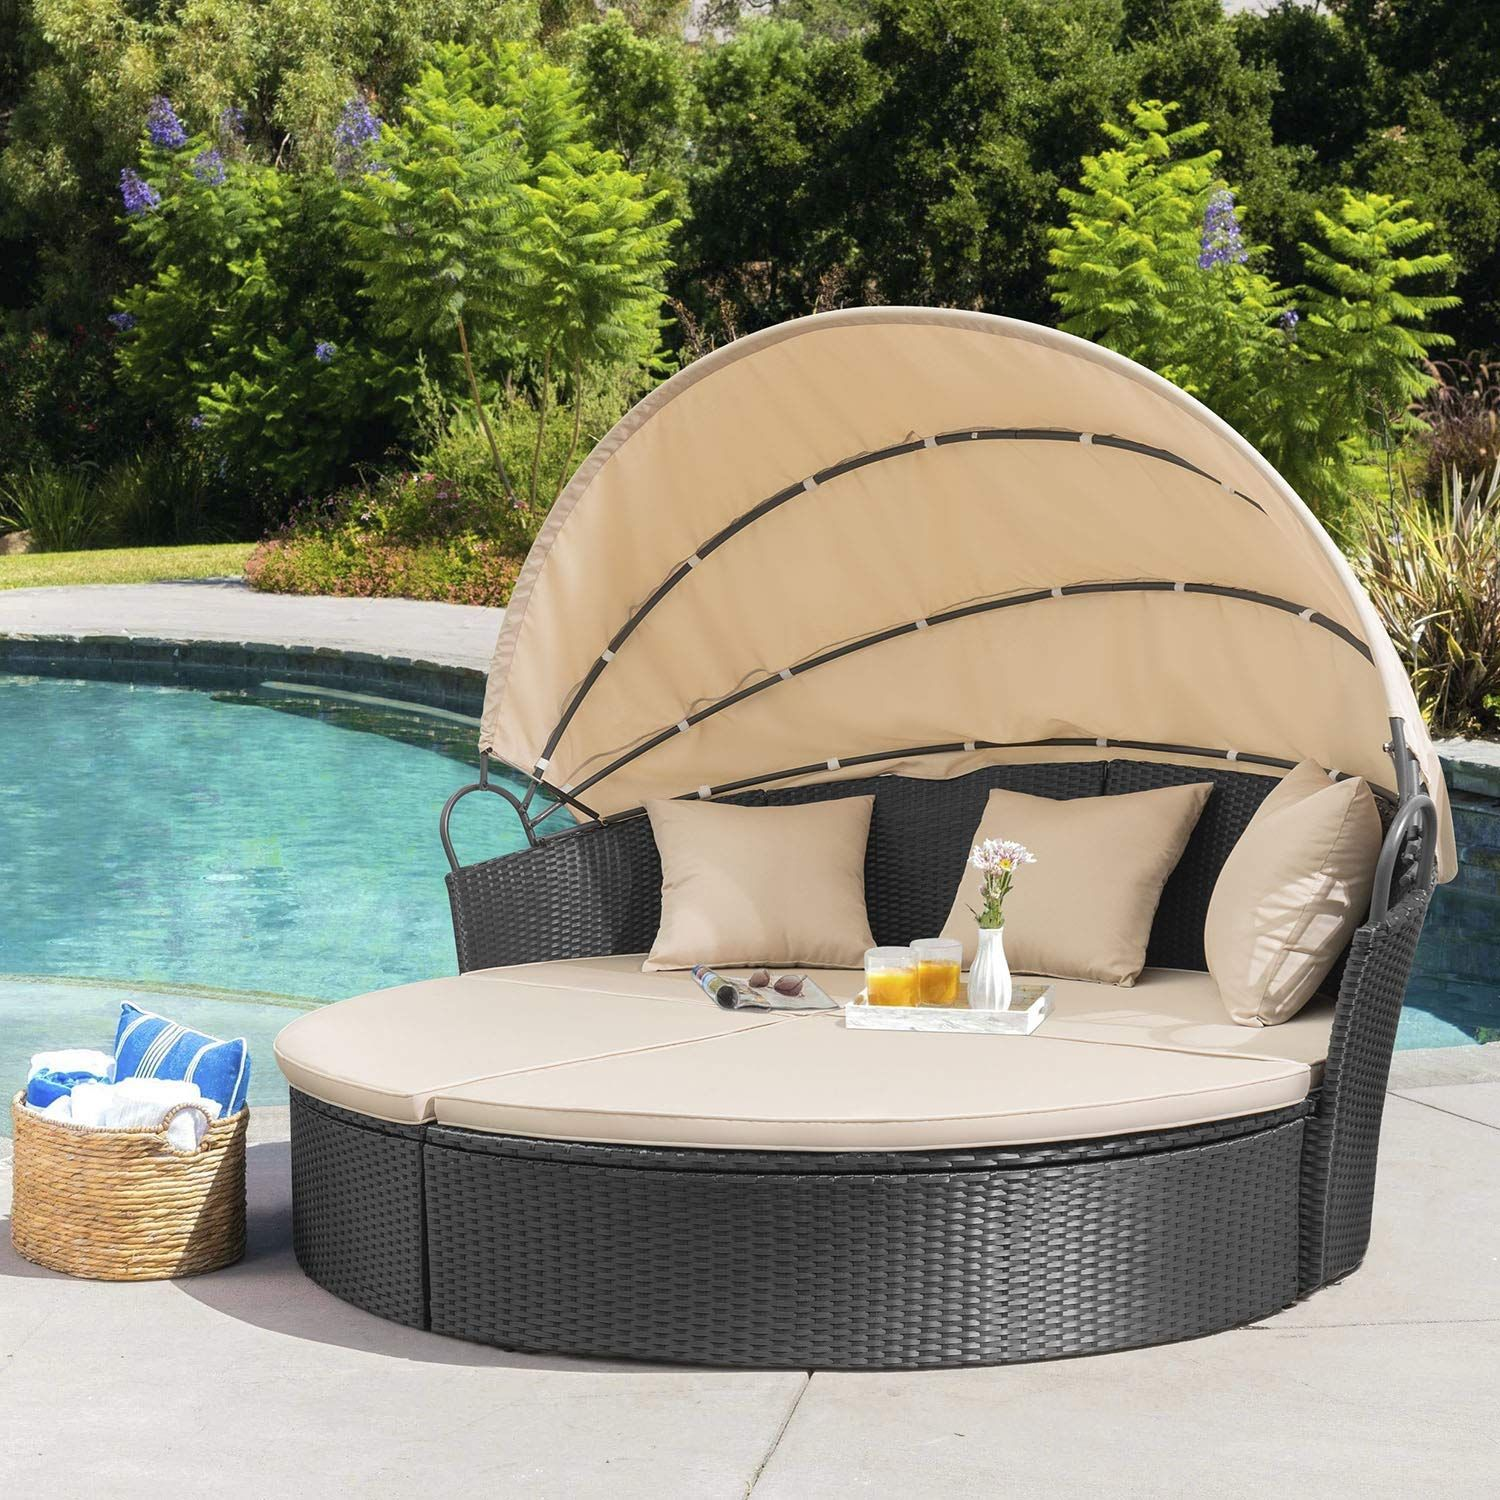 Outdoor Patio Round Daybed With Retractable Chiefsformen Com In 2020 Outdoor Daybed Patio Sofa Set Backyard Seating